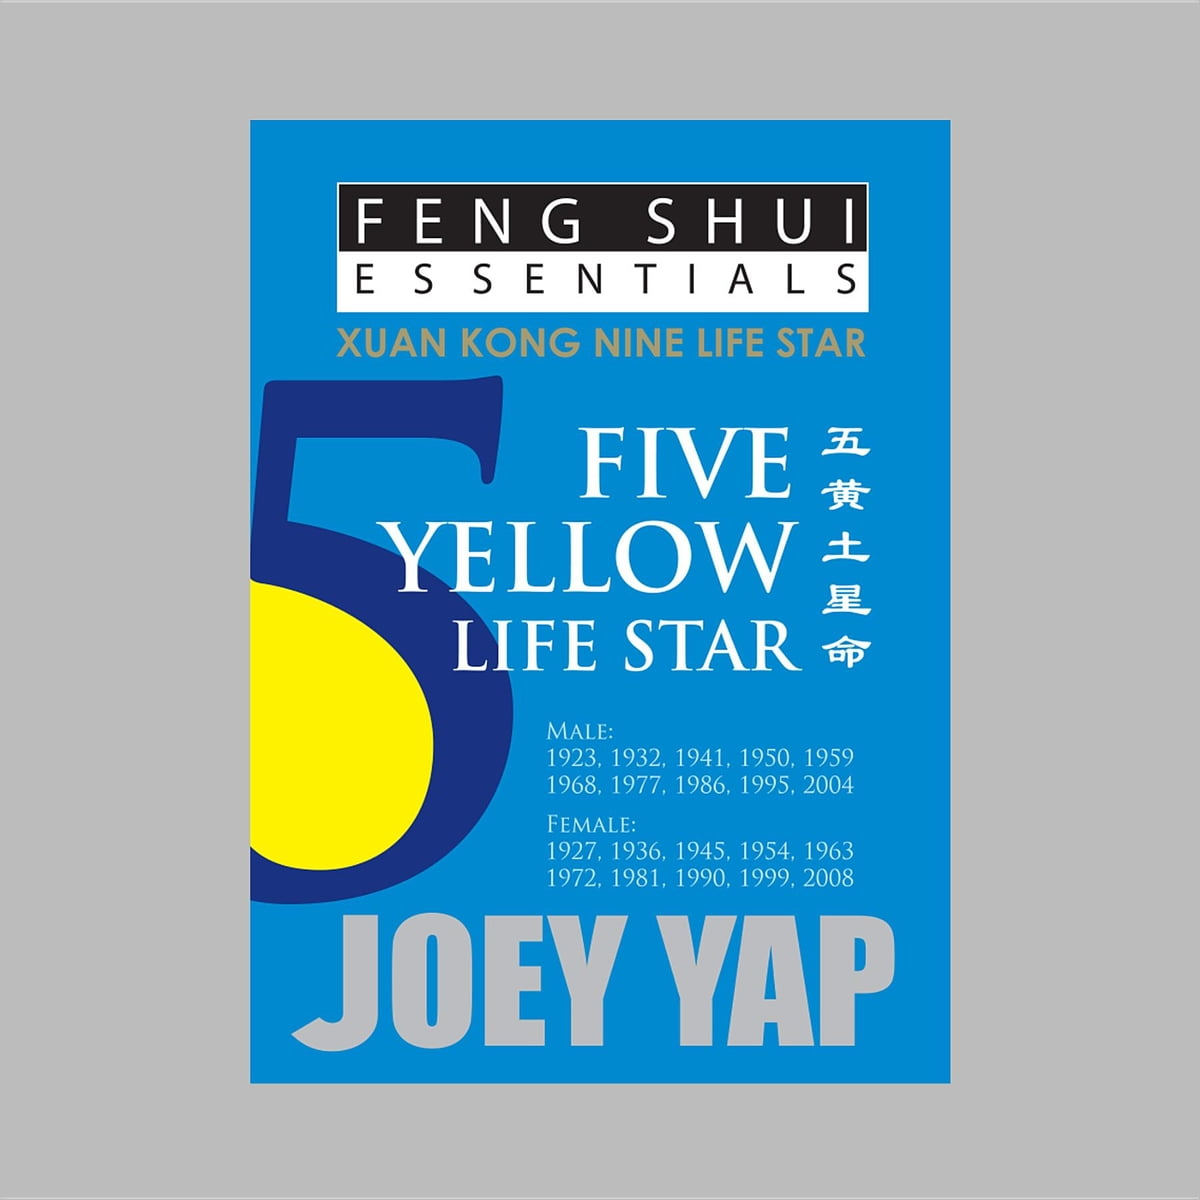 Feng Shui Essentials - 5 Yellow Life Star eBook by Yap Joey - 9789670310060  | Rakuten Kobo